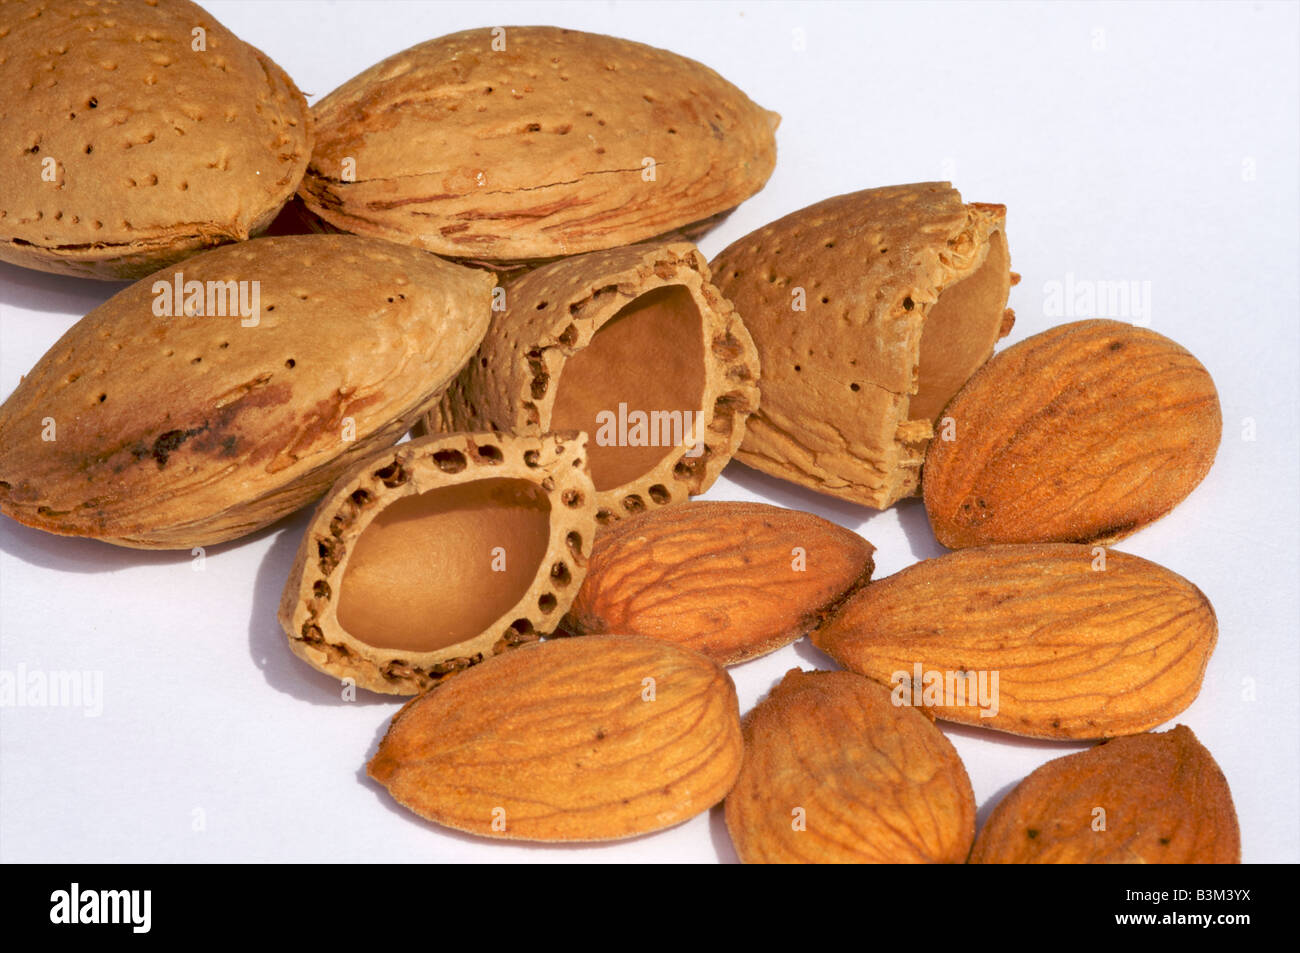 A closeup of almonds in their shells, cracked almond shells and almonds - Stock Image